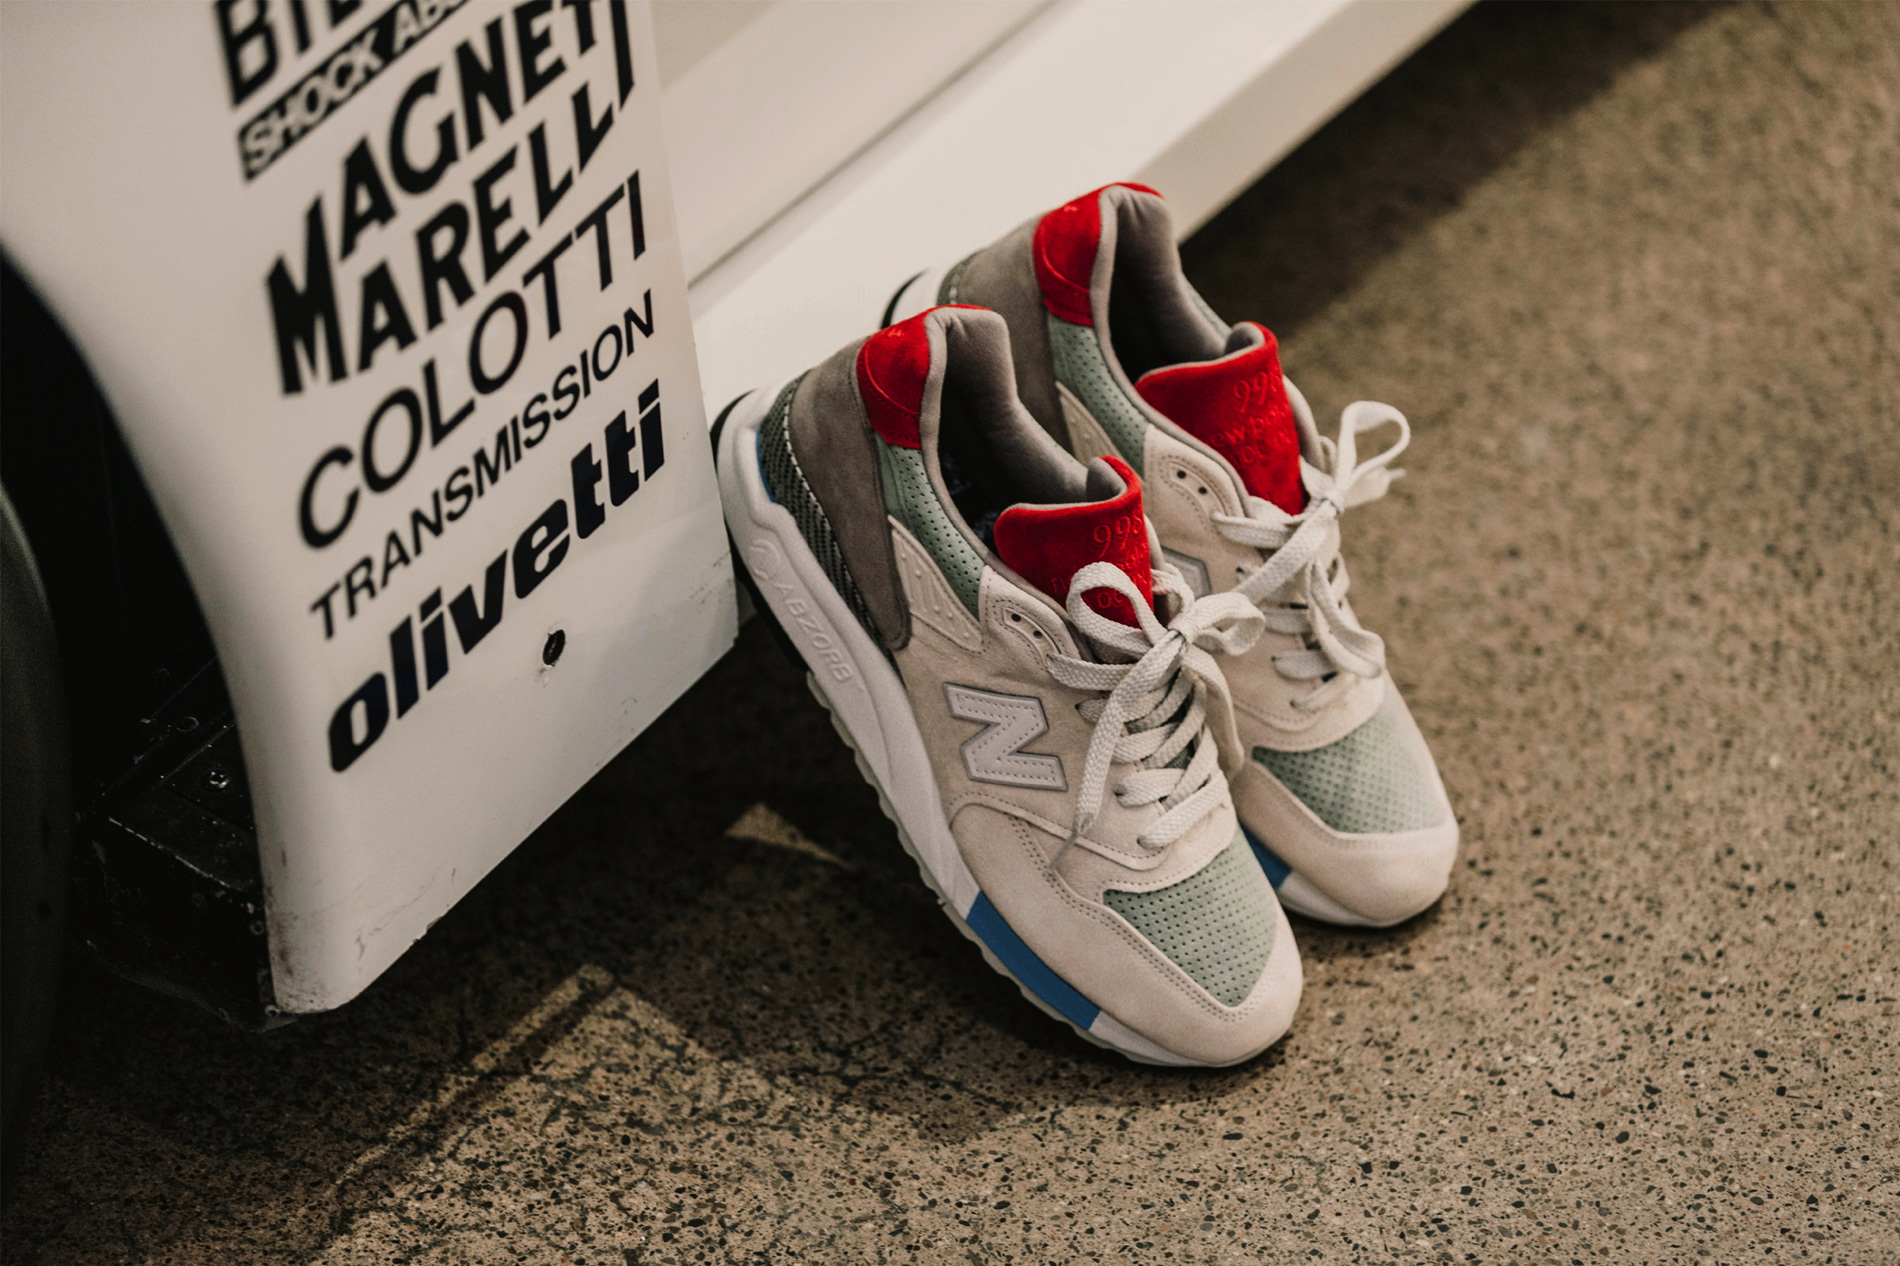 Concepts x New Balance Releases Grand Tourer 7